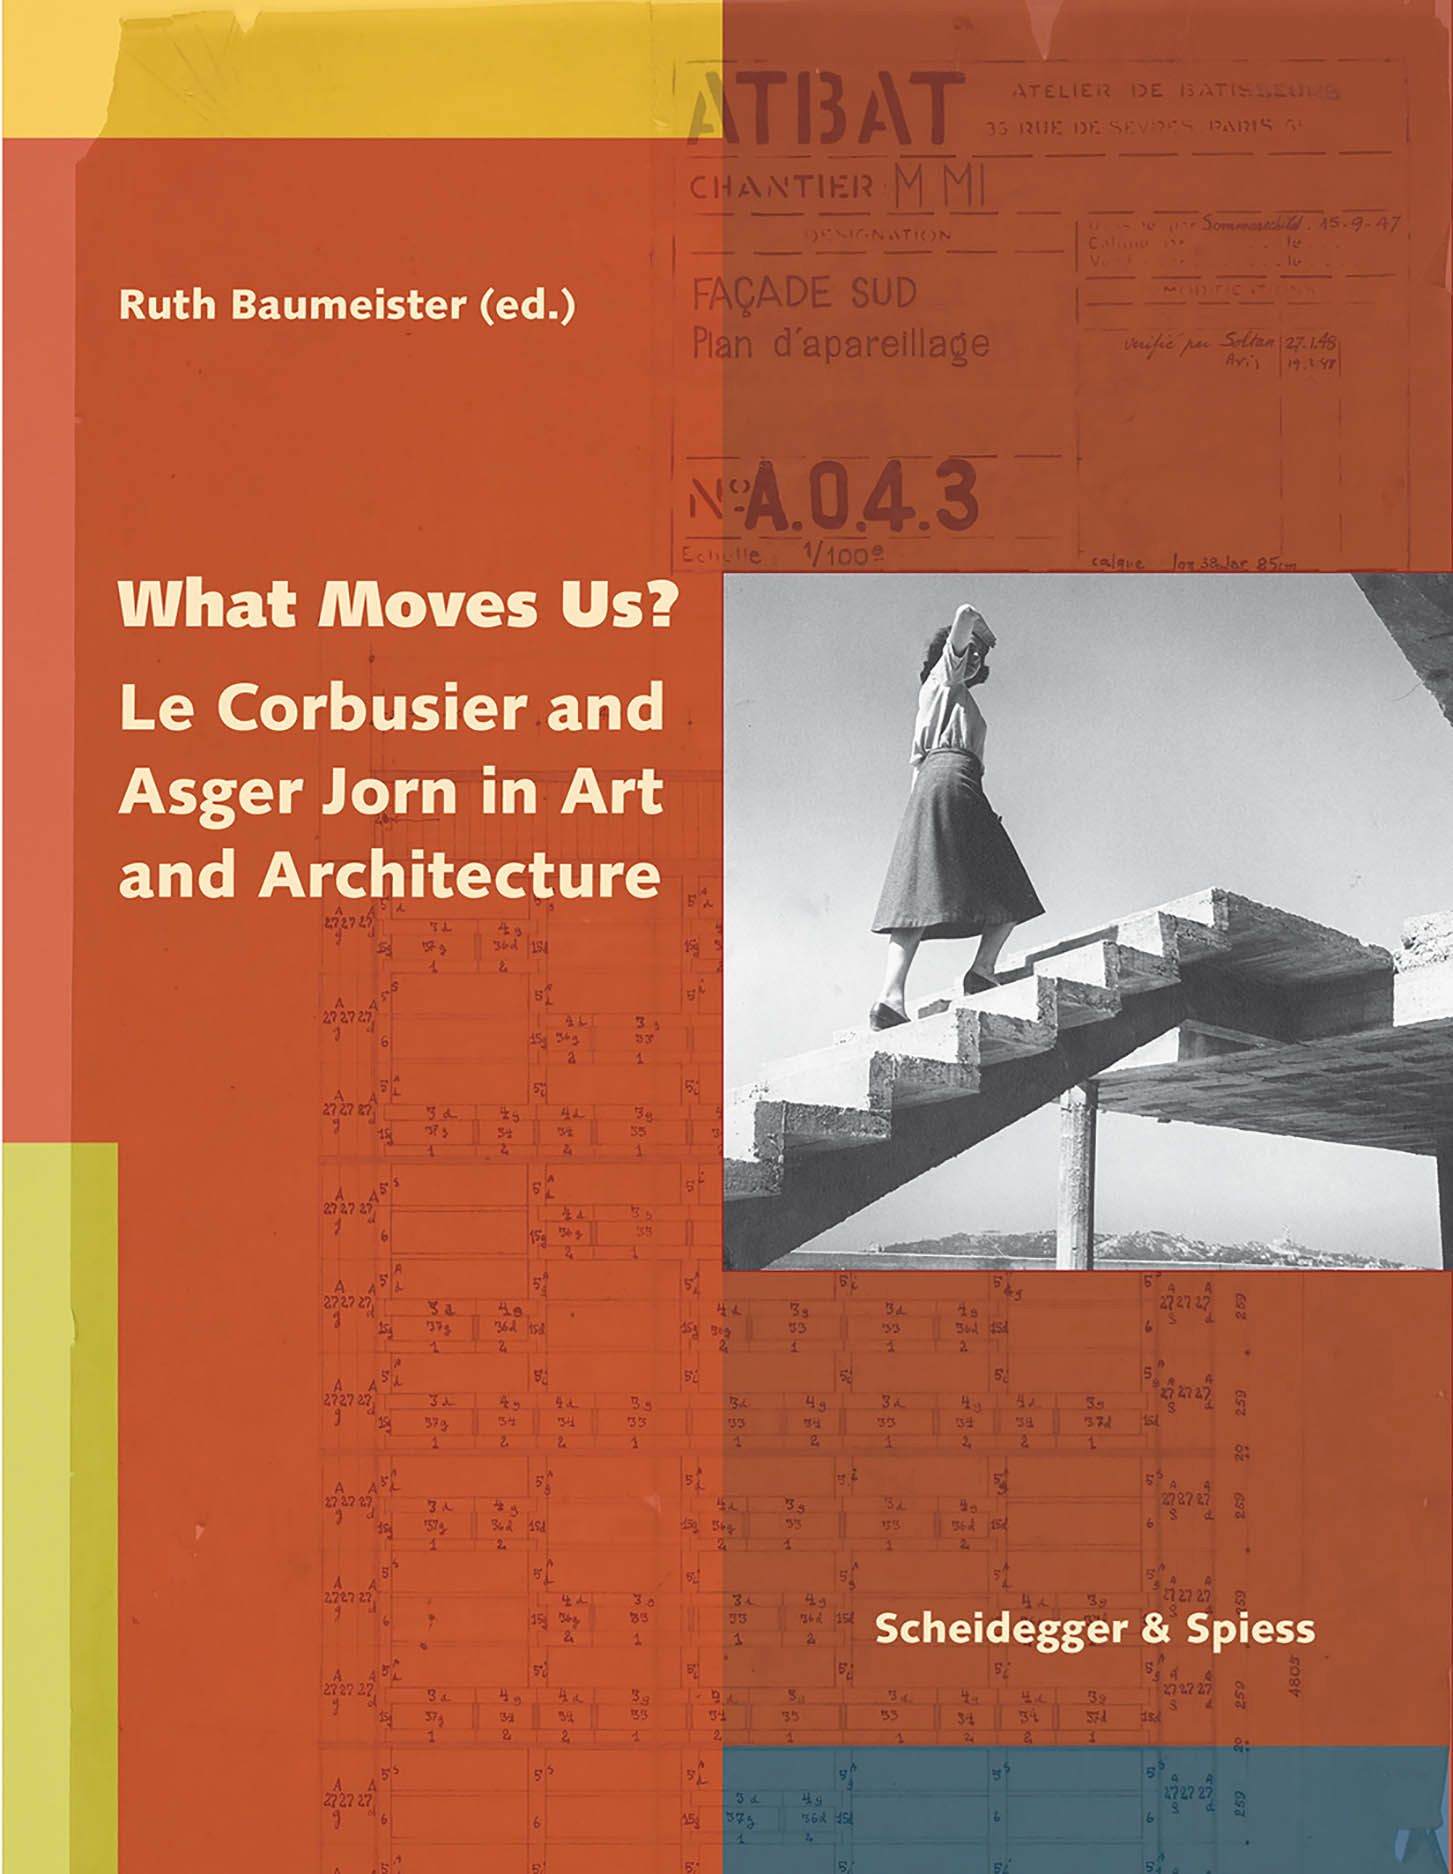 What Moves Us?: Le Corbusier and Asger Jorn in Art and Architecture